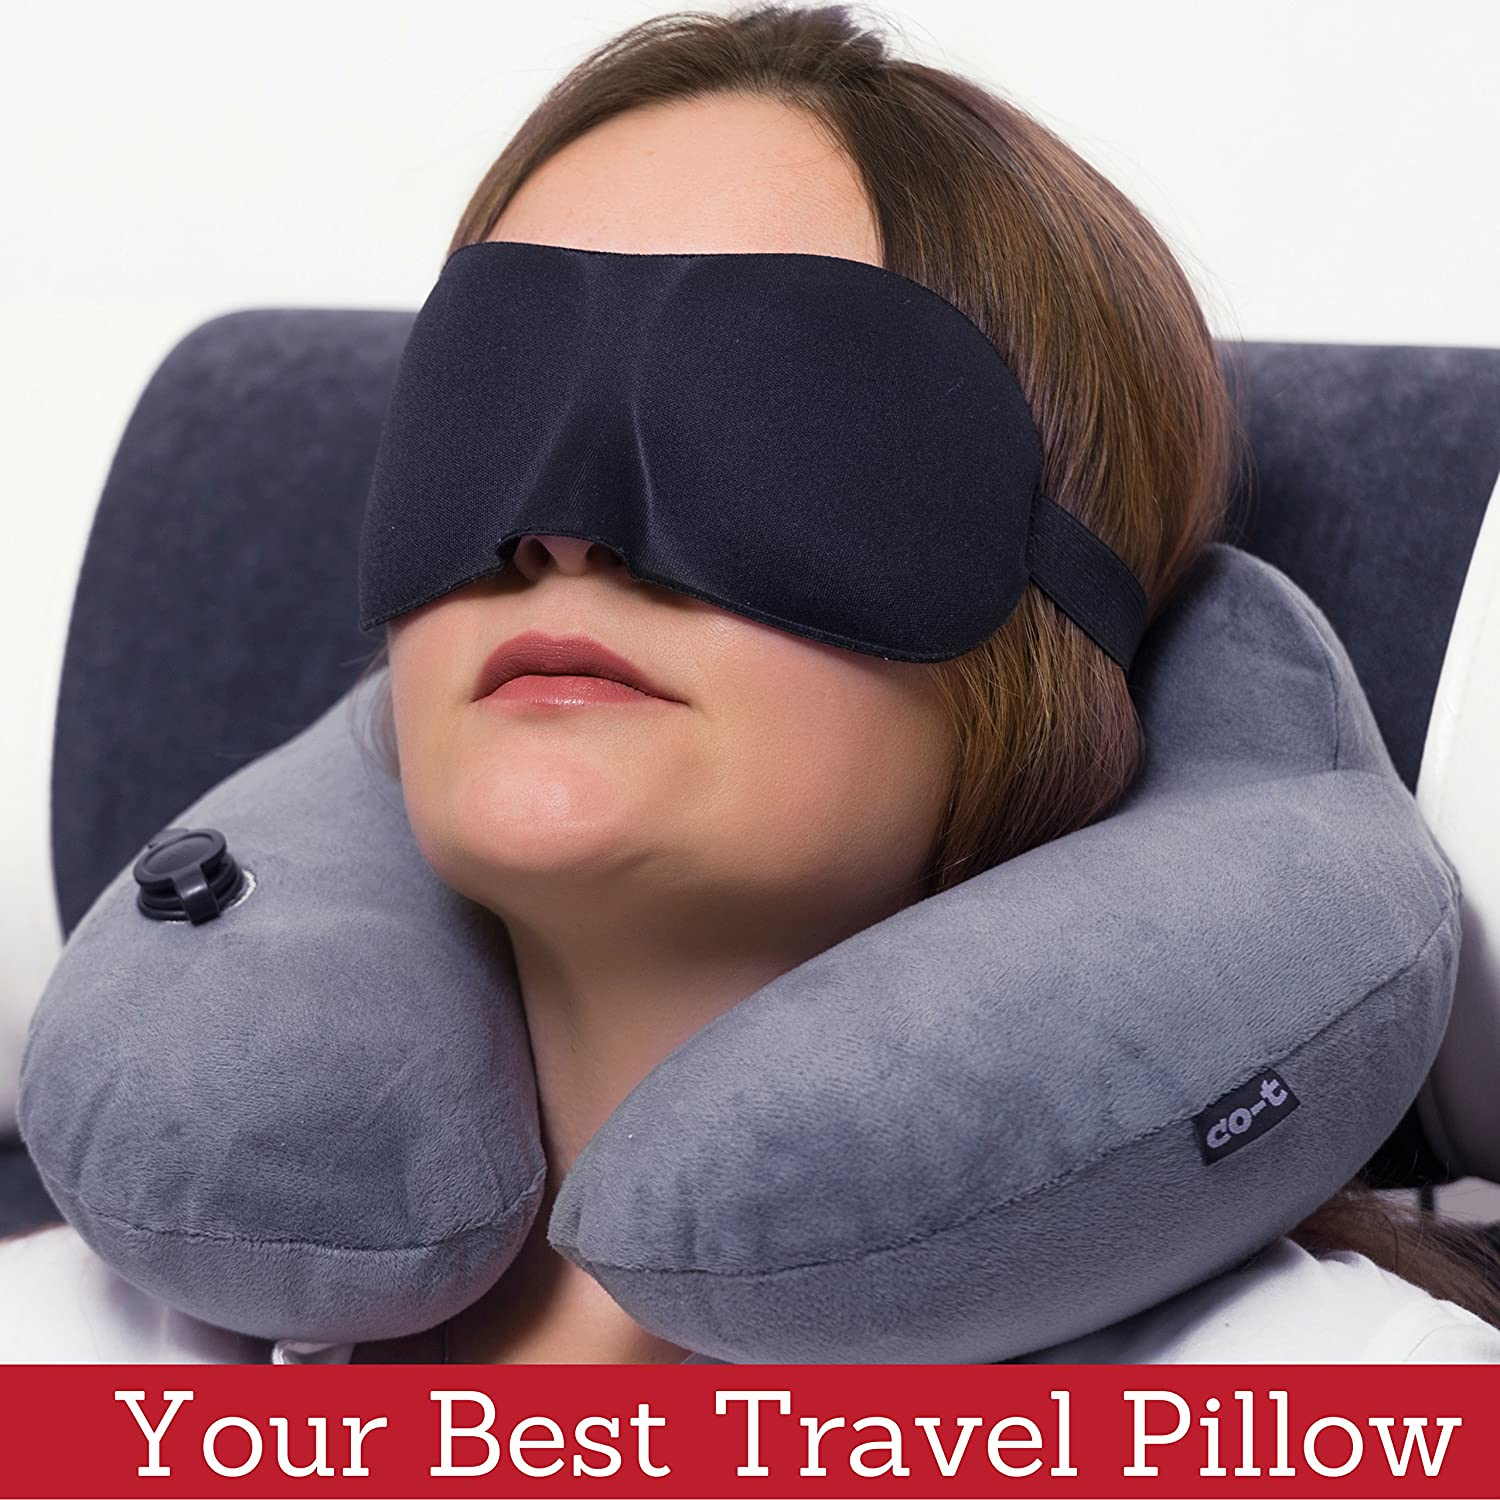 Inflatable Neck Pillow - Inflatable Travel Pillow Set for Airplane - Neck Travel Pillows for Women - Airplane Pillow for Men with Packsack - Soft Velvet Flight Pillow. Co-t